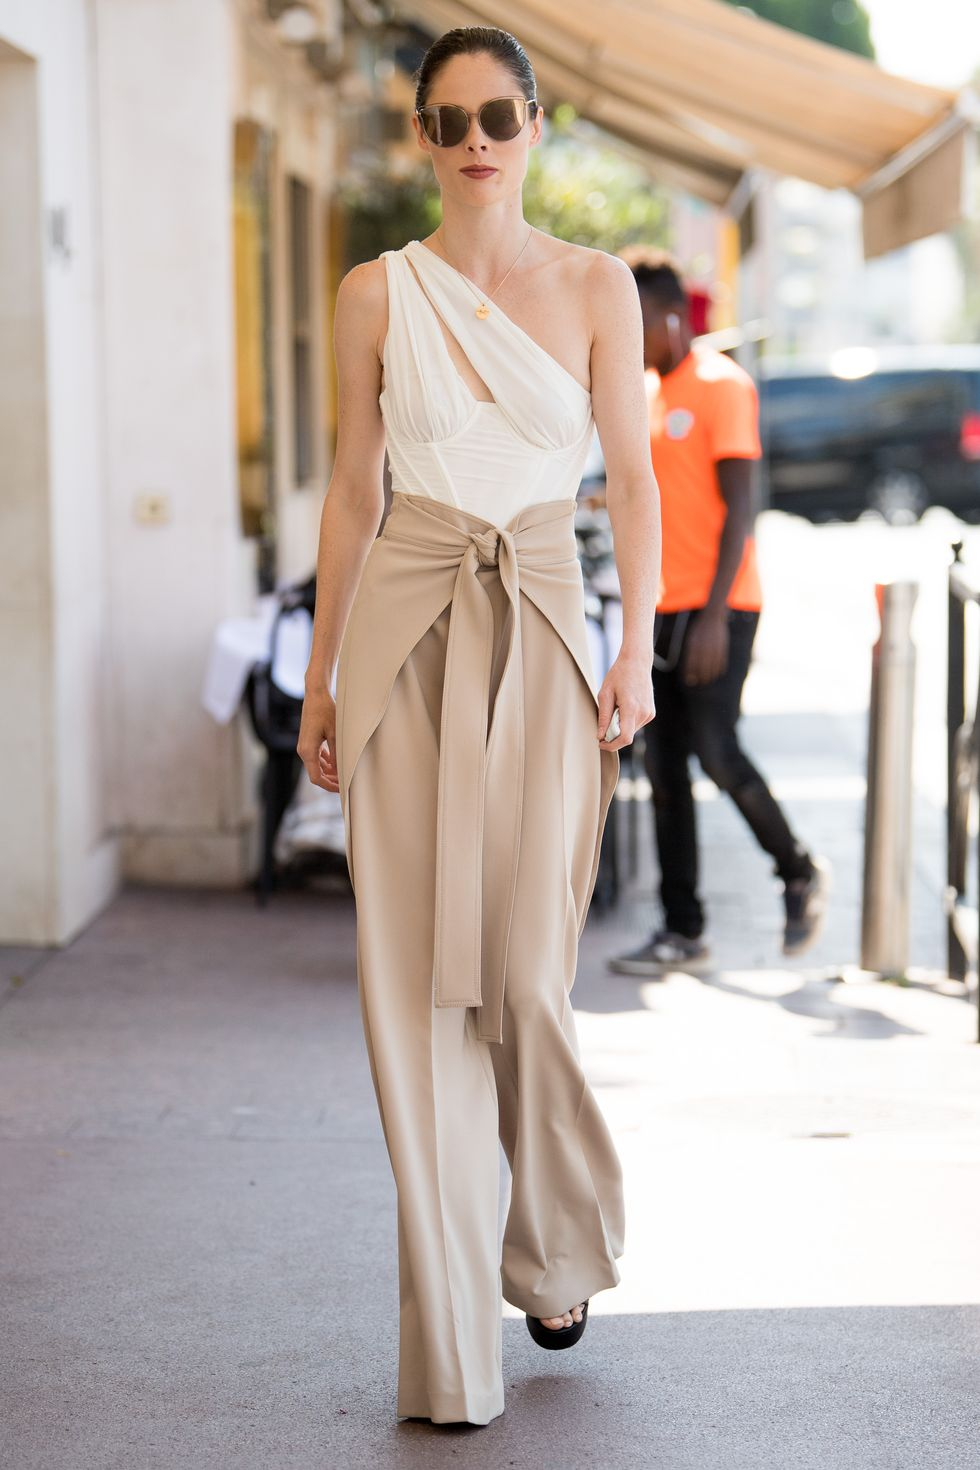 coco-rocha-wears-christian-siriano-out-in-cannes-2021